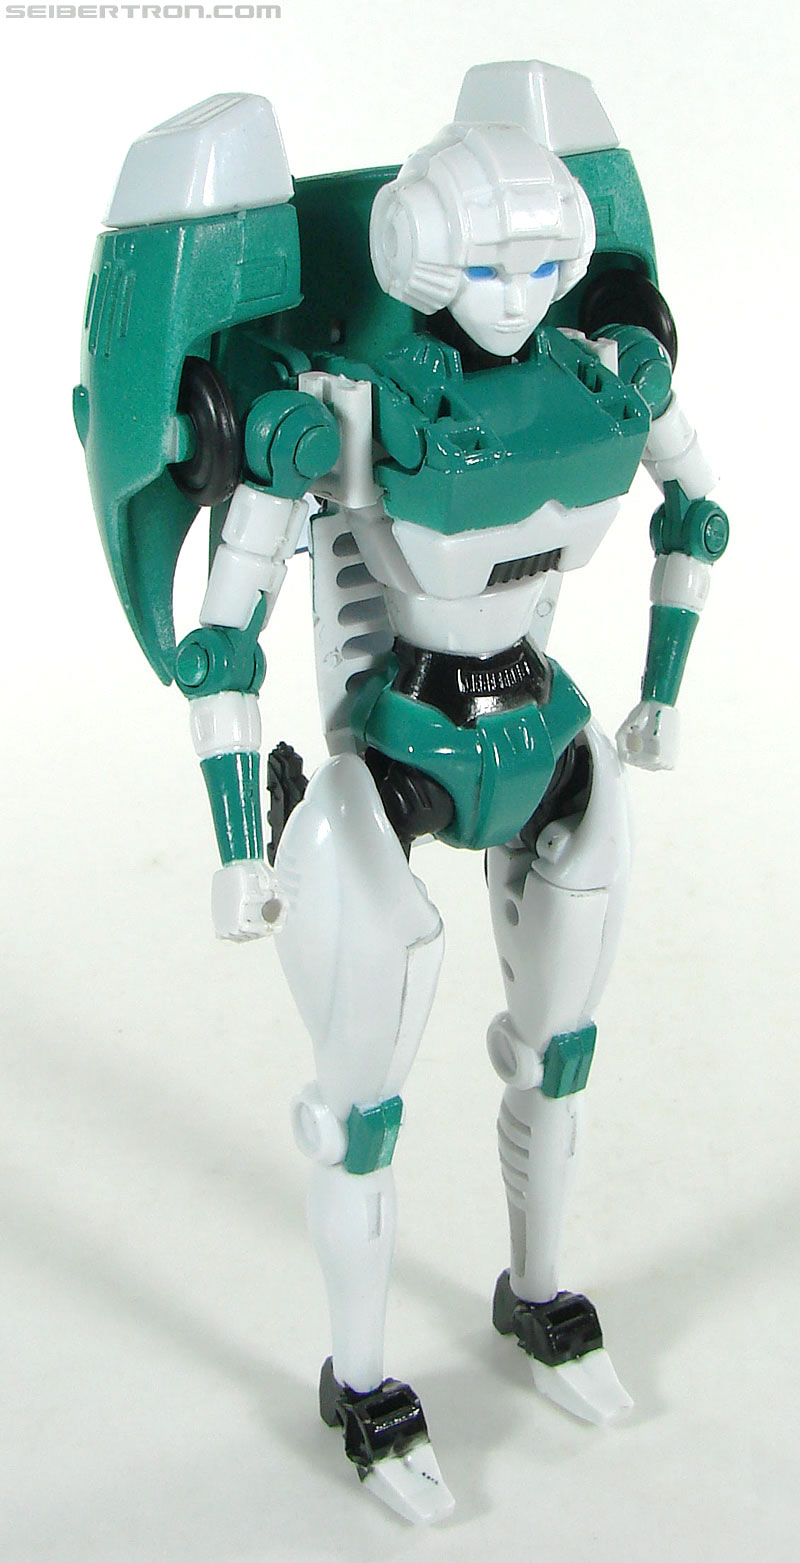 Transformers 3rd Party Products TRNS-02 Medic (Paradron Medic) (Image #47 of 122)